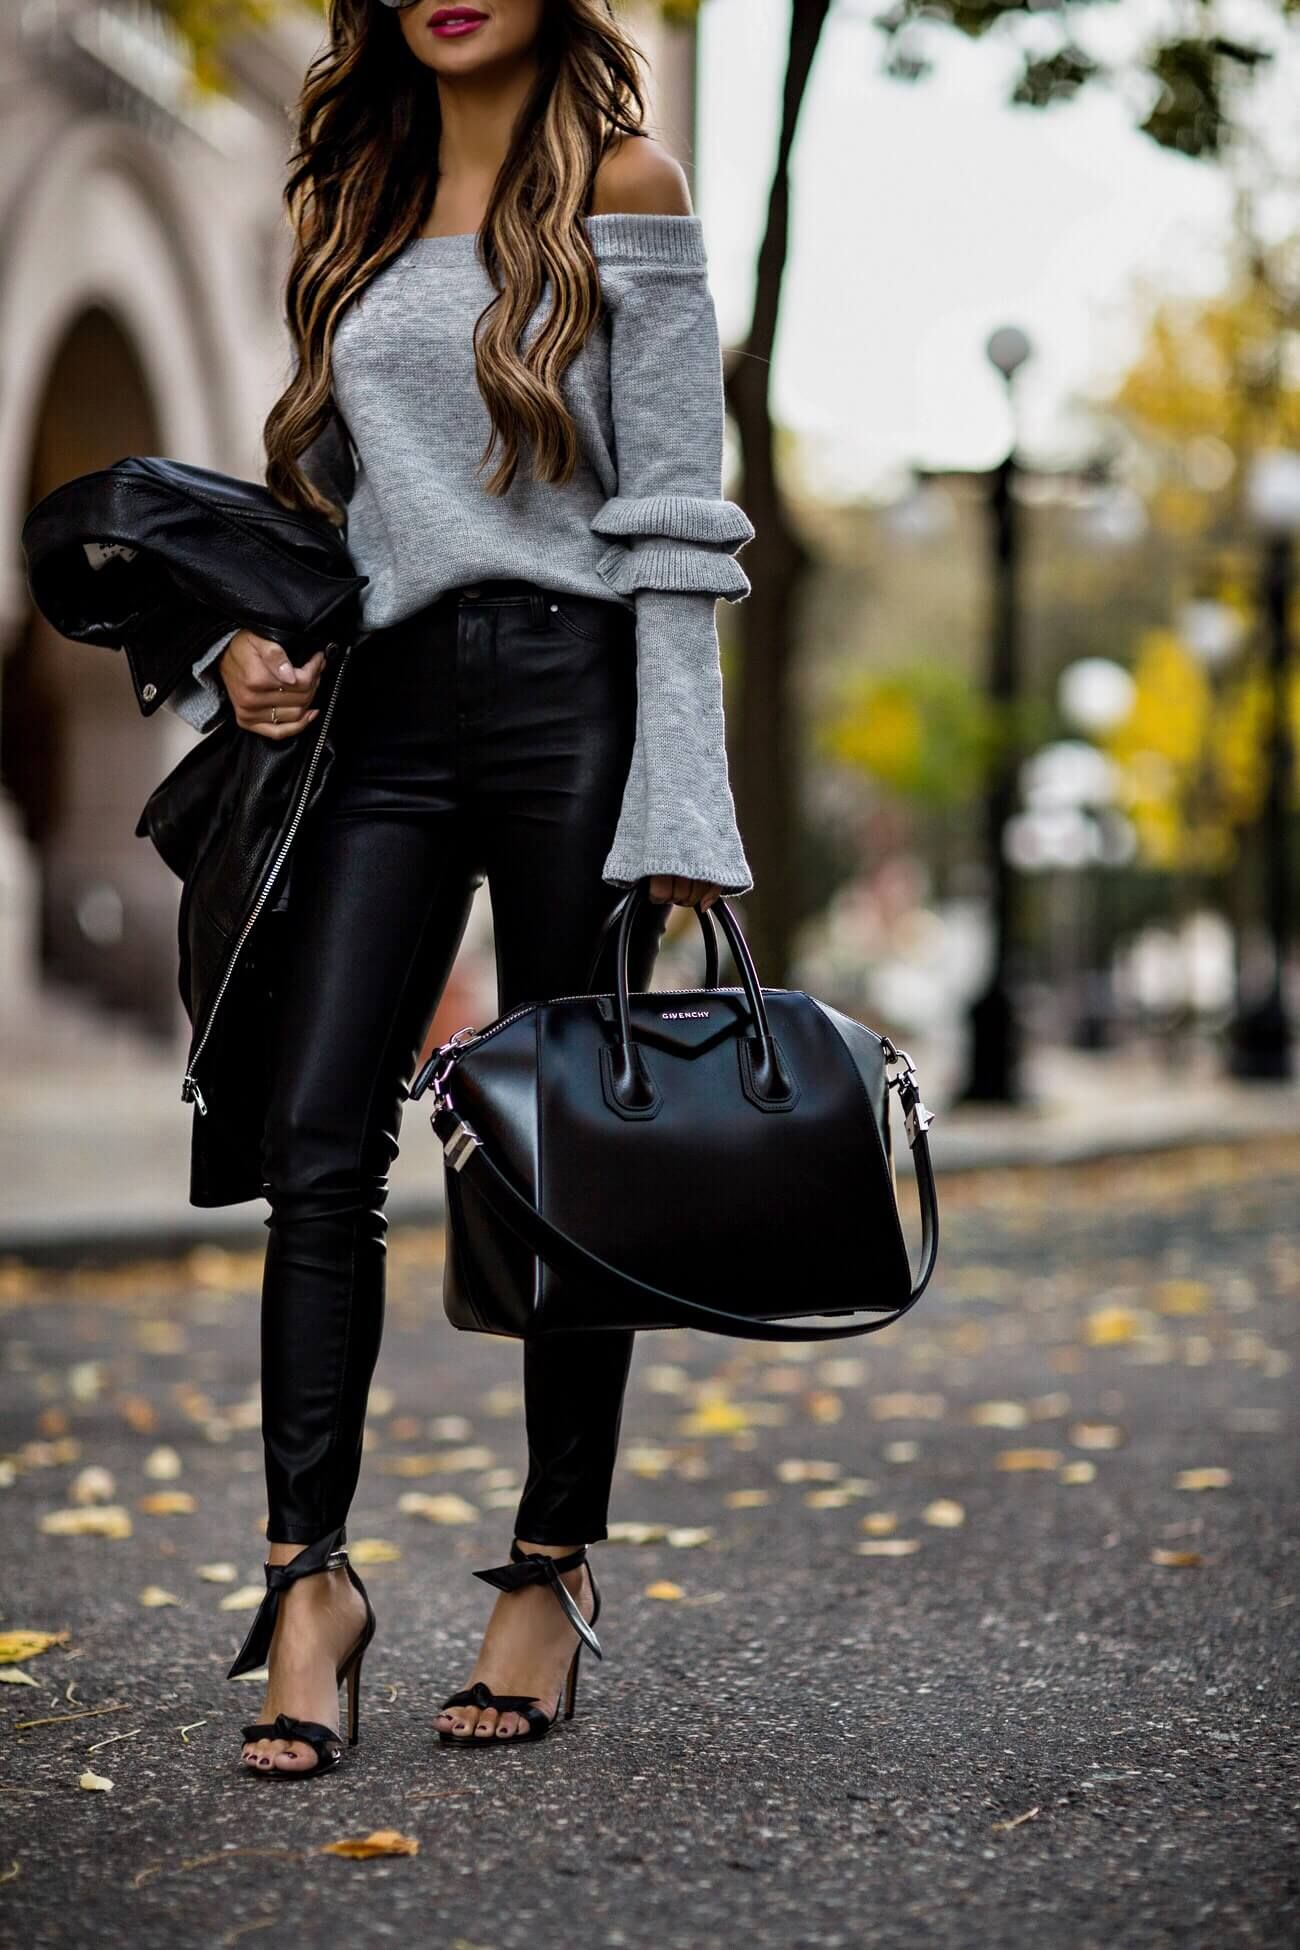 7e5eaa0b5465 fashion blogger mia mia mine wearing a givenchy antigona bag